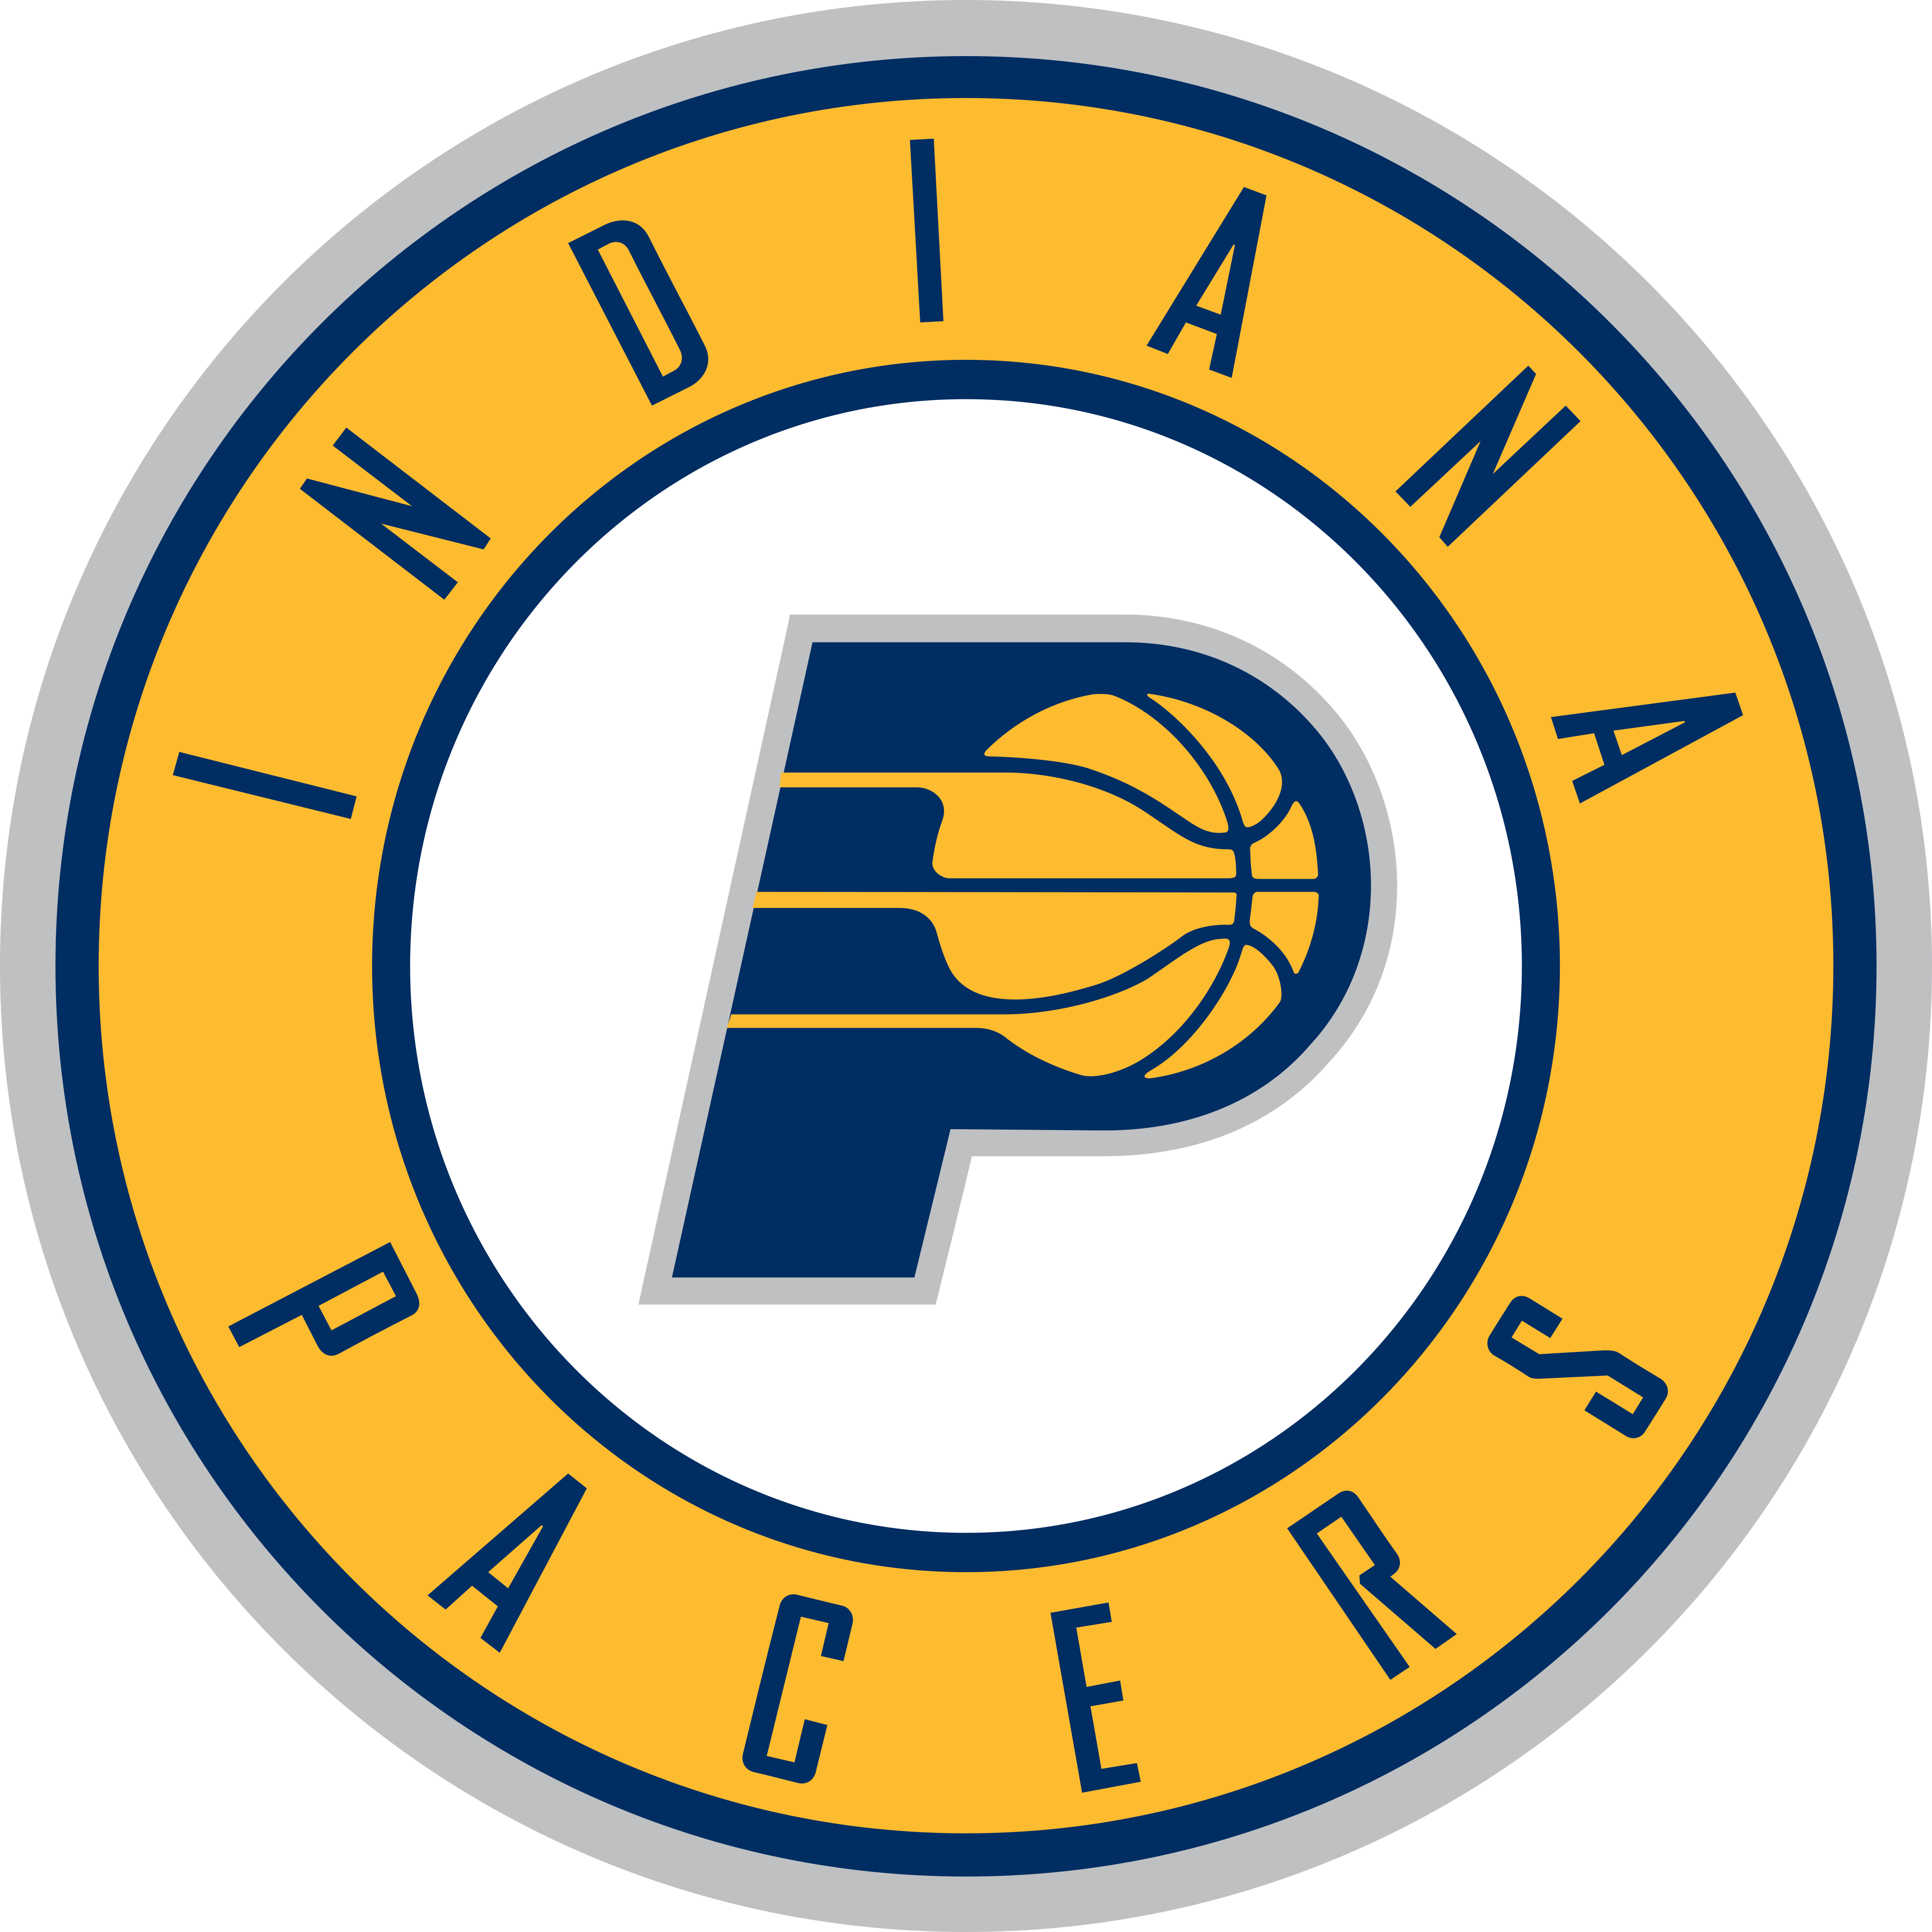 indiana pacers logo 1 - Indiana Pacers Logo